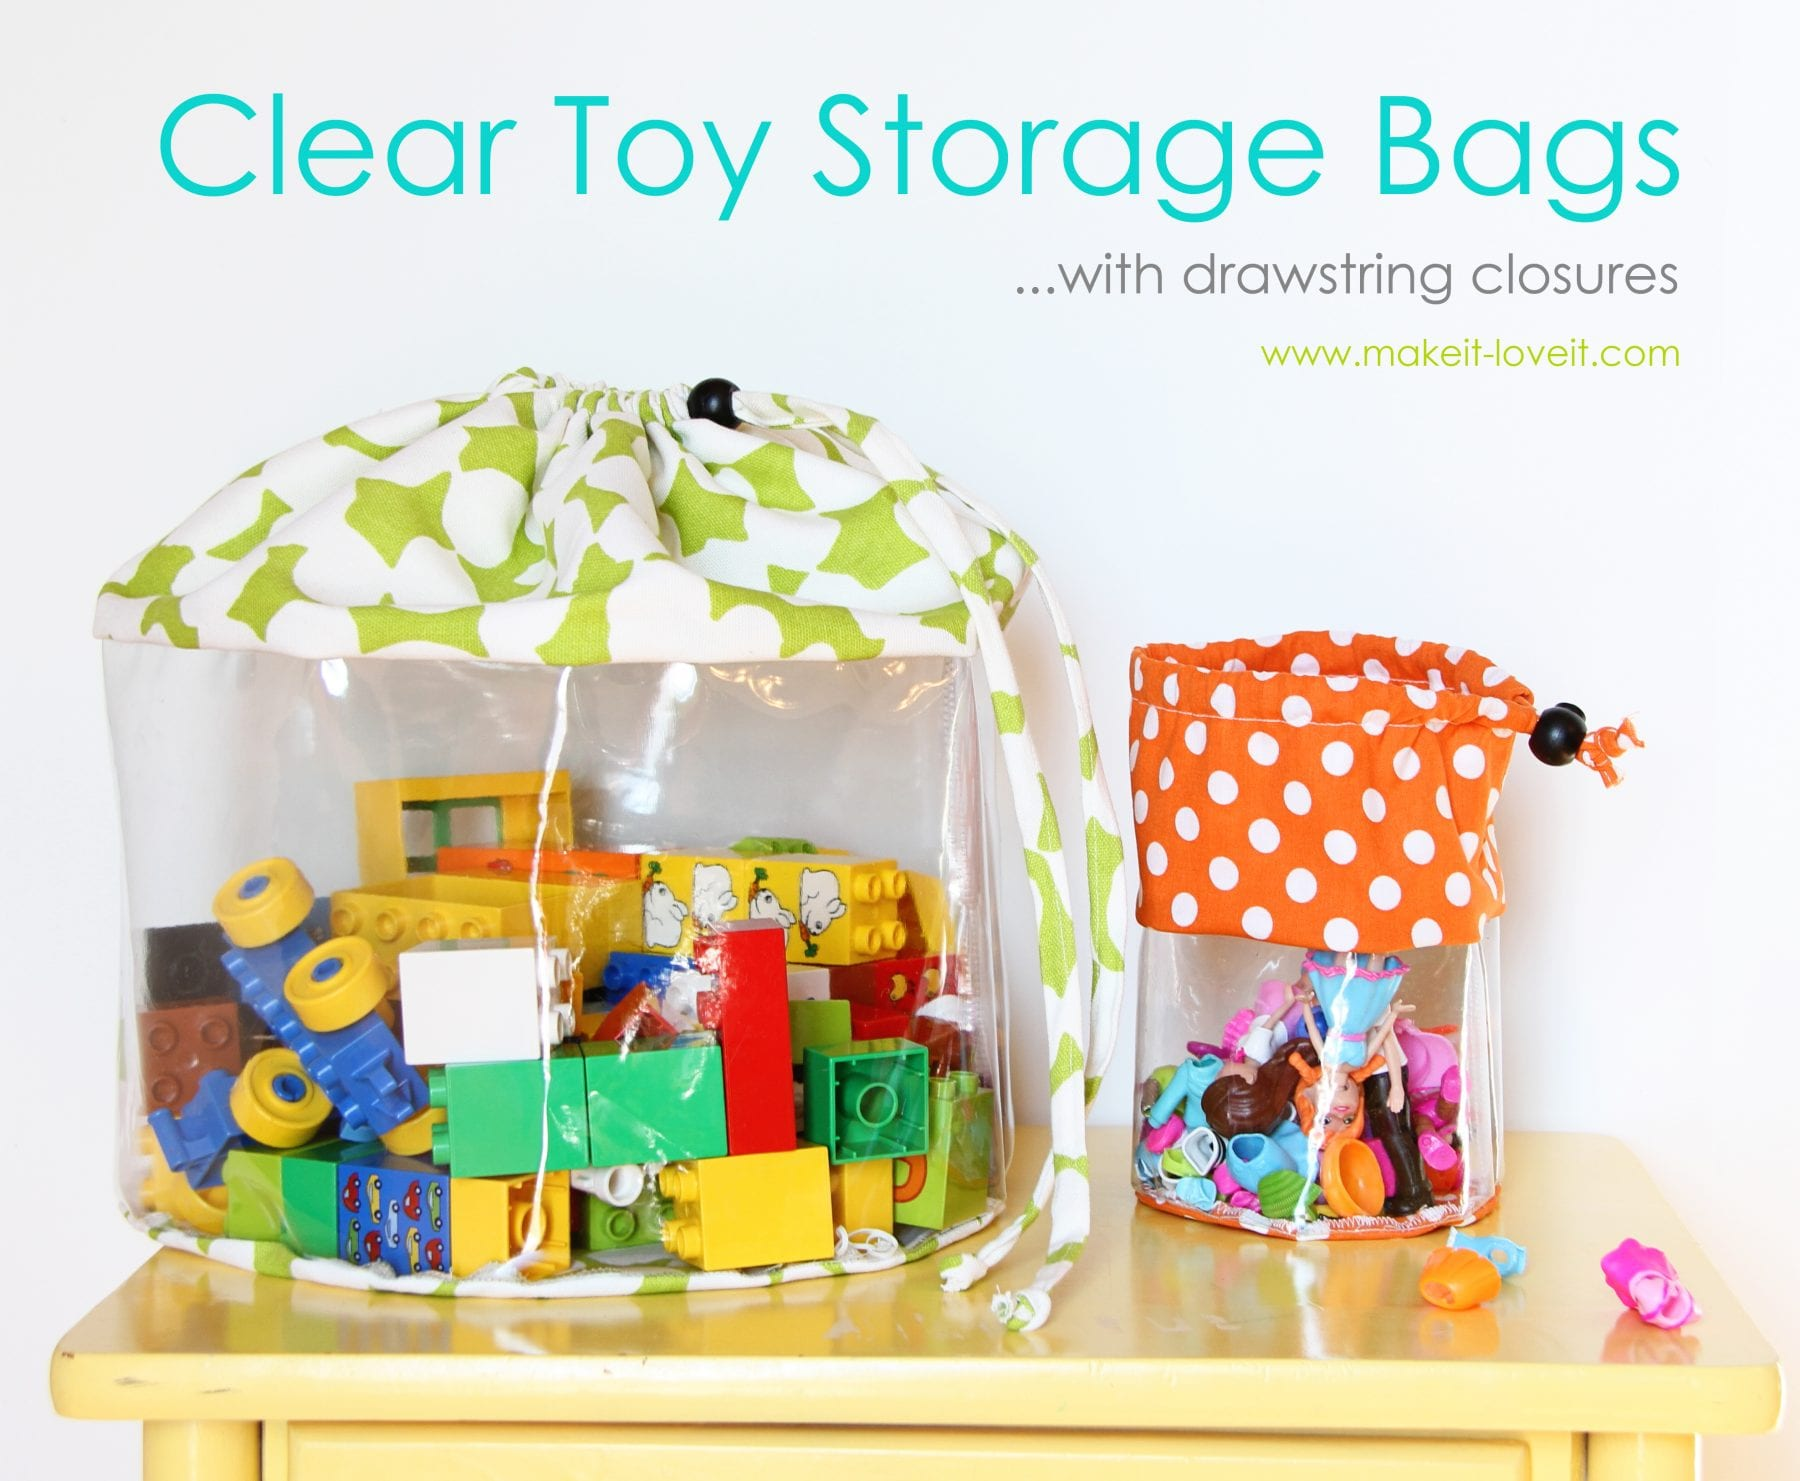 Clear Toy Storage Bags (with drawstring closure)